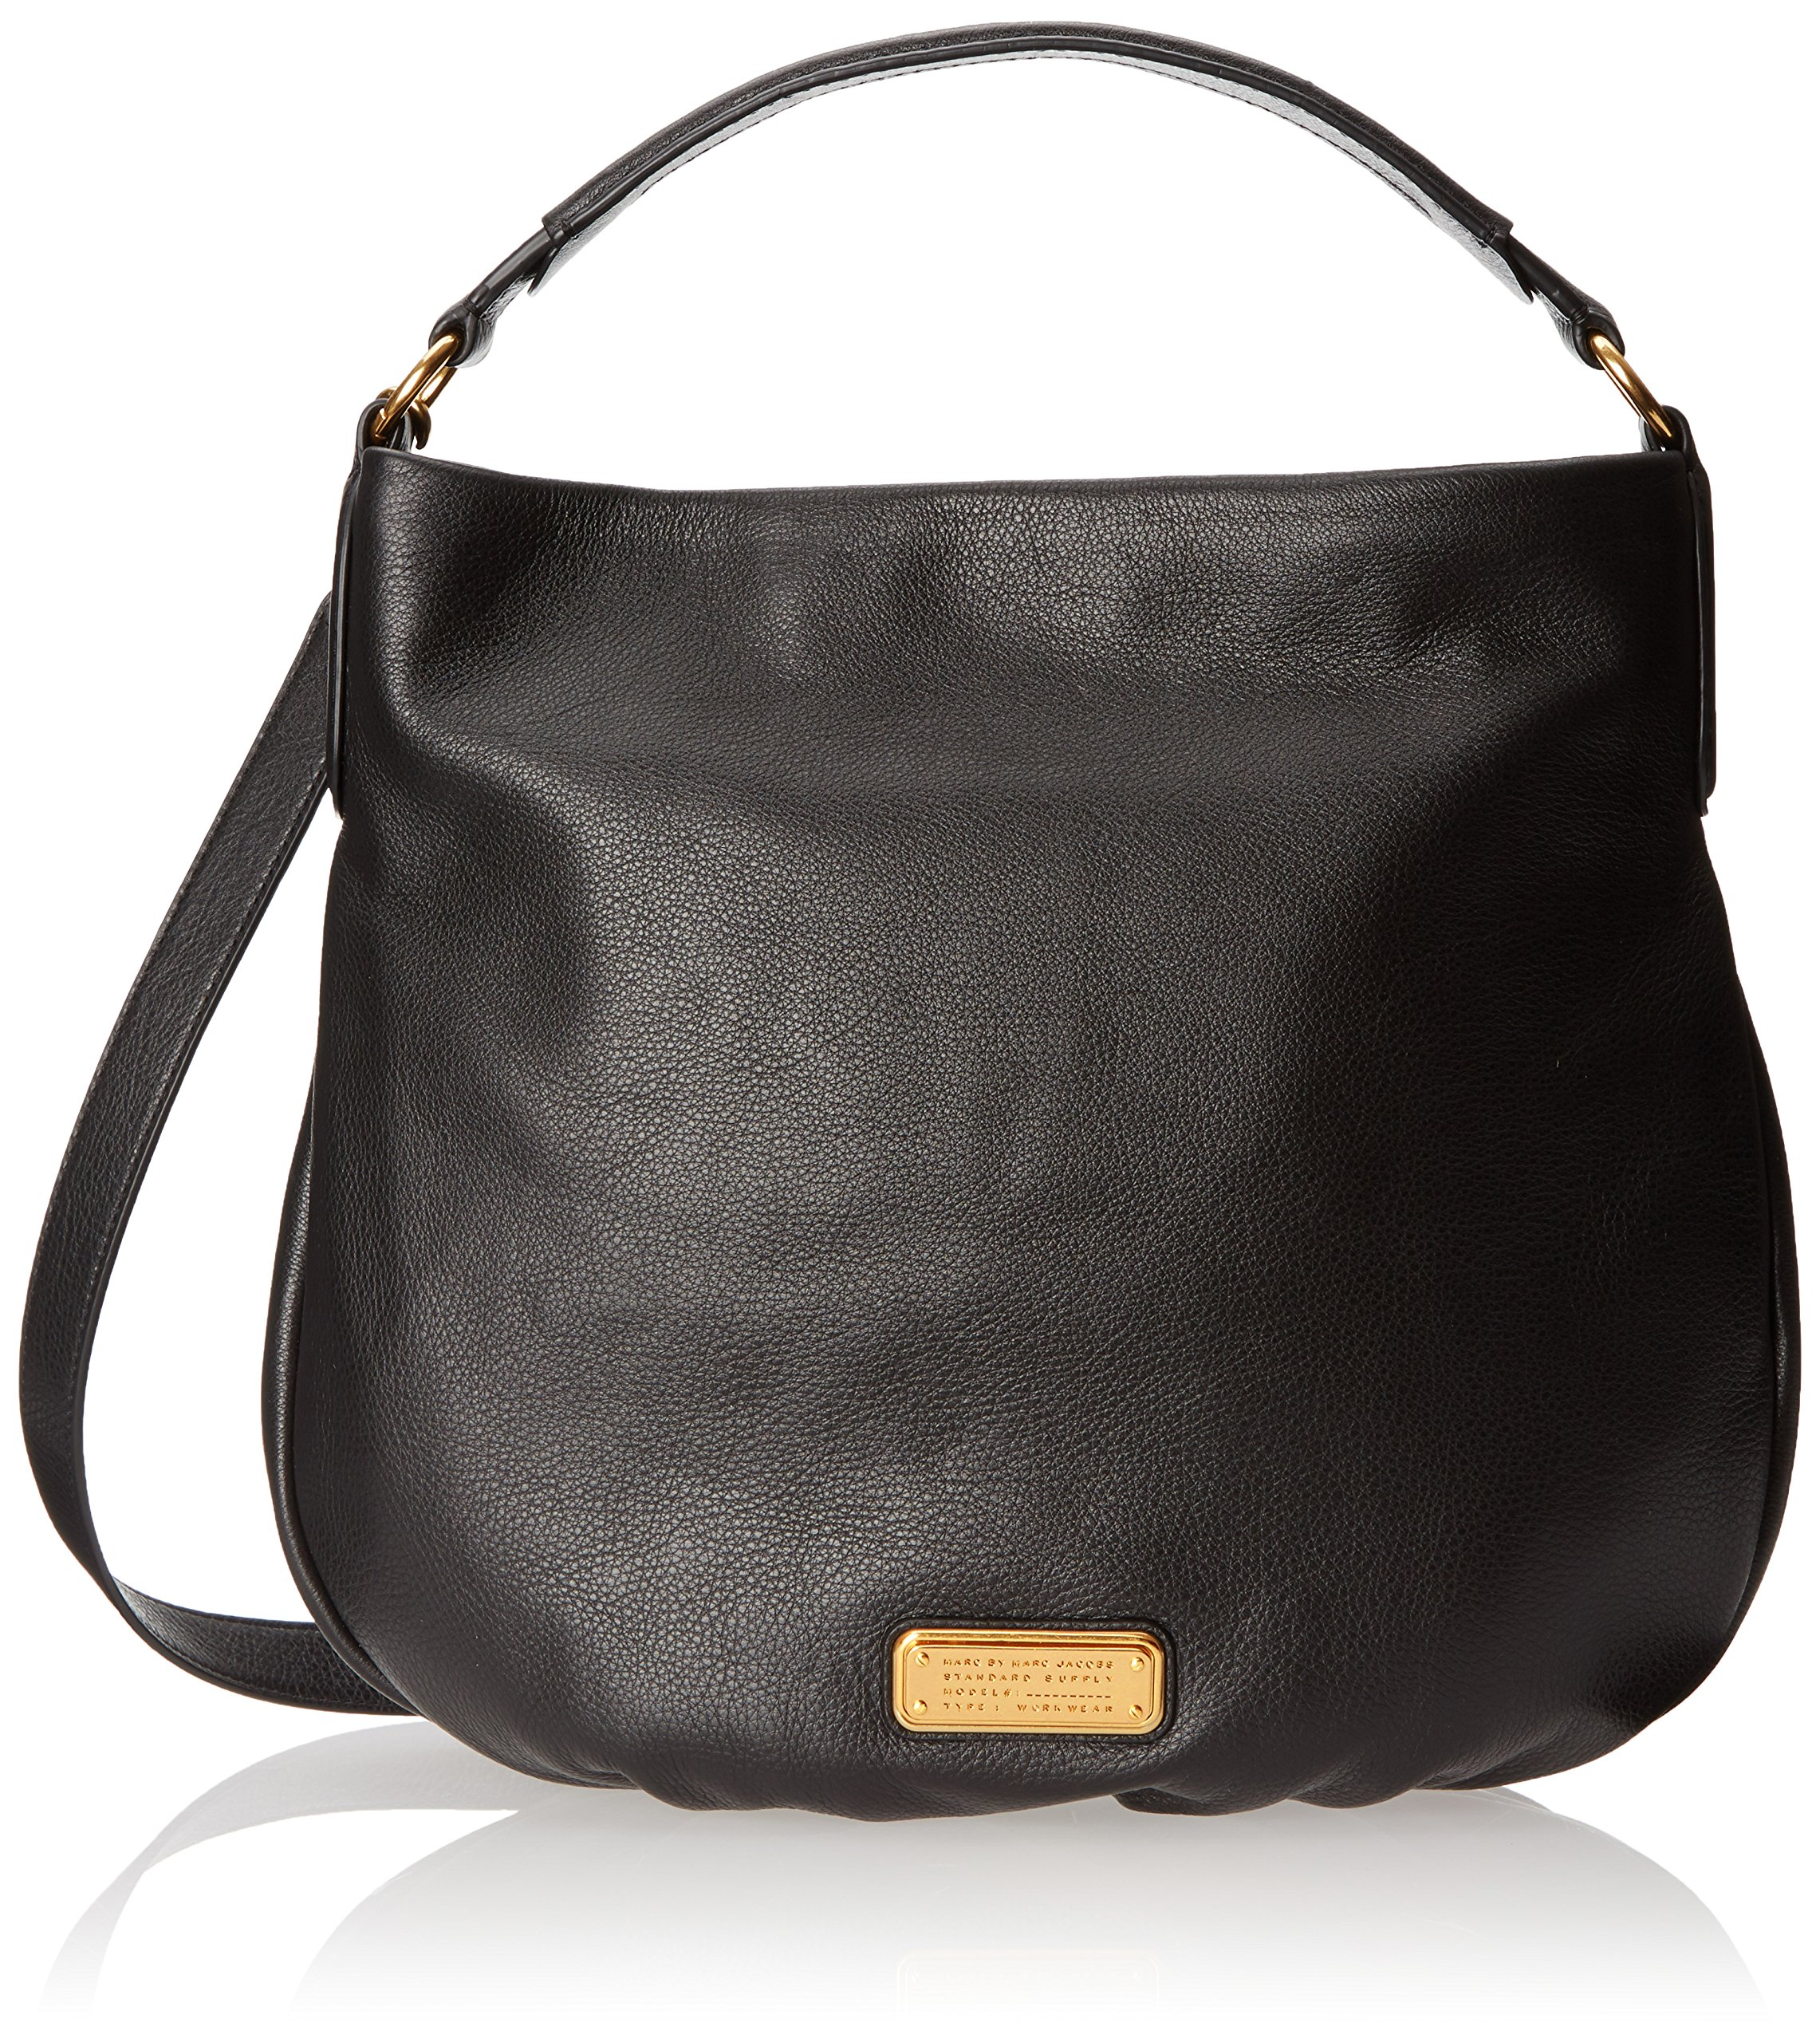 Marc by Marc Jacobs New Q Hillier Convertible Hobo, Black, One Size